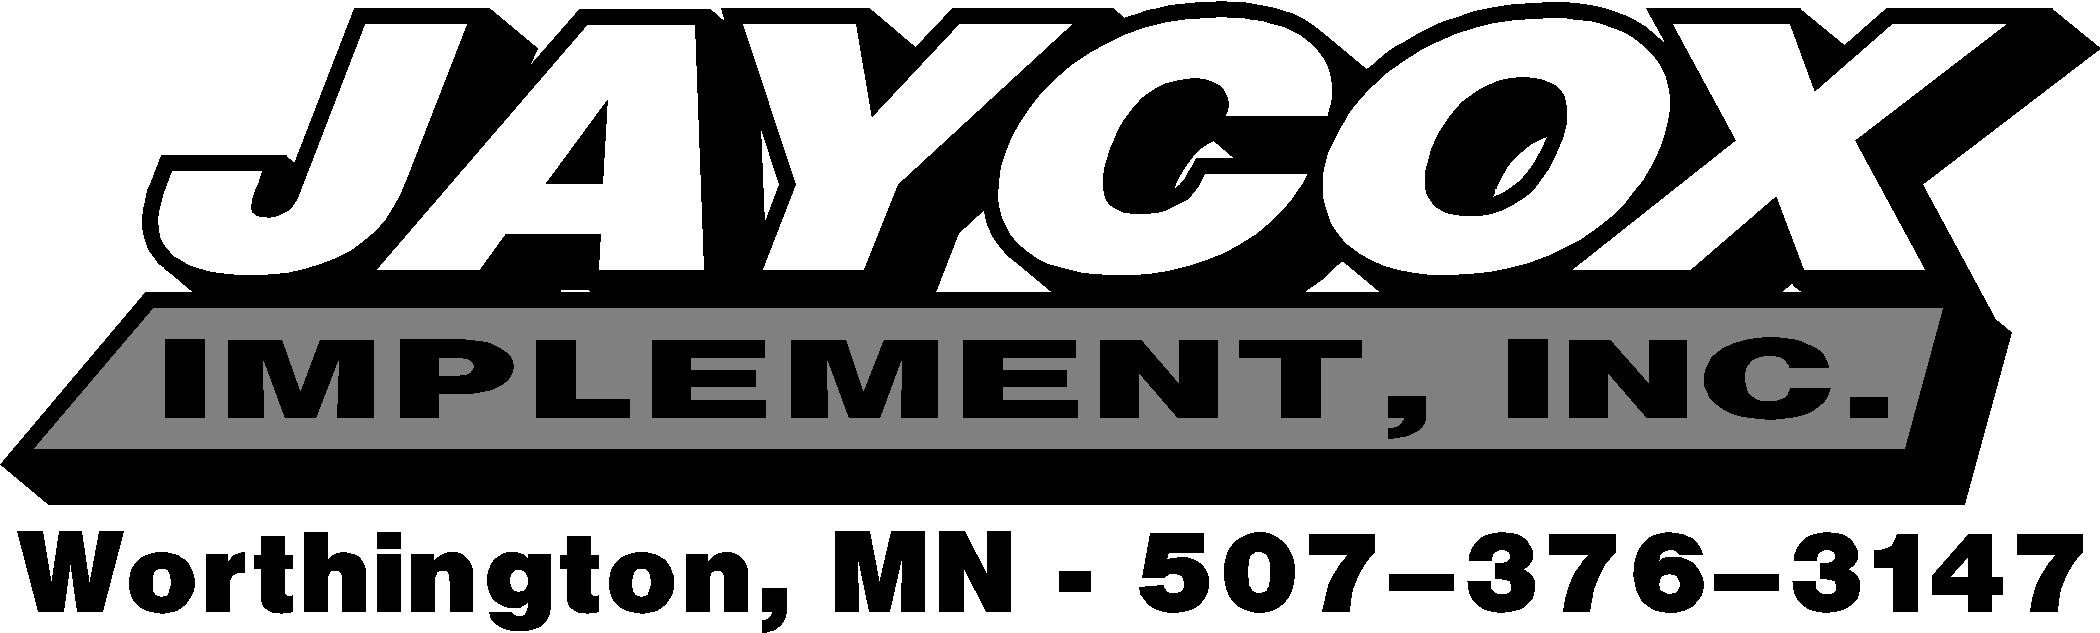 Jaycox Implement Inc